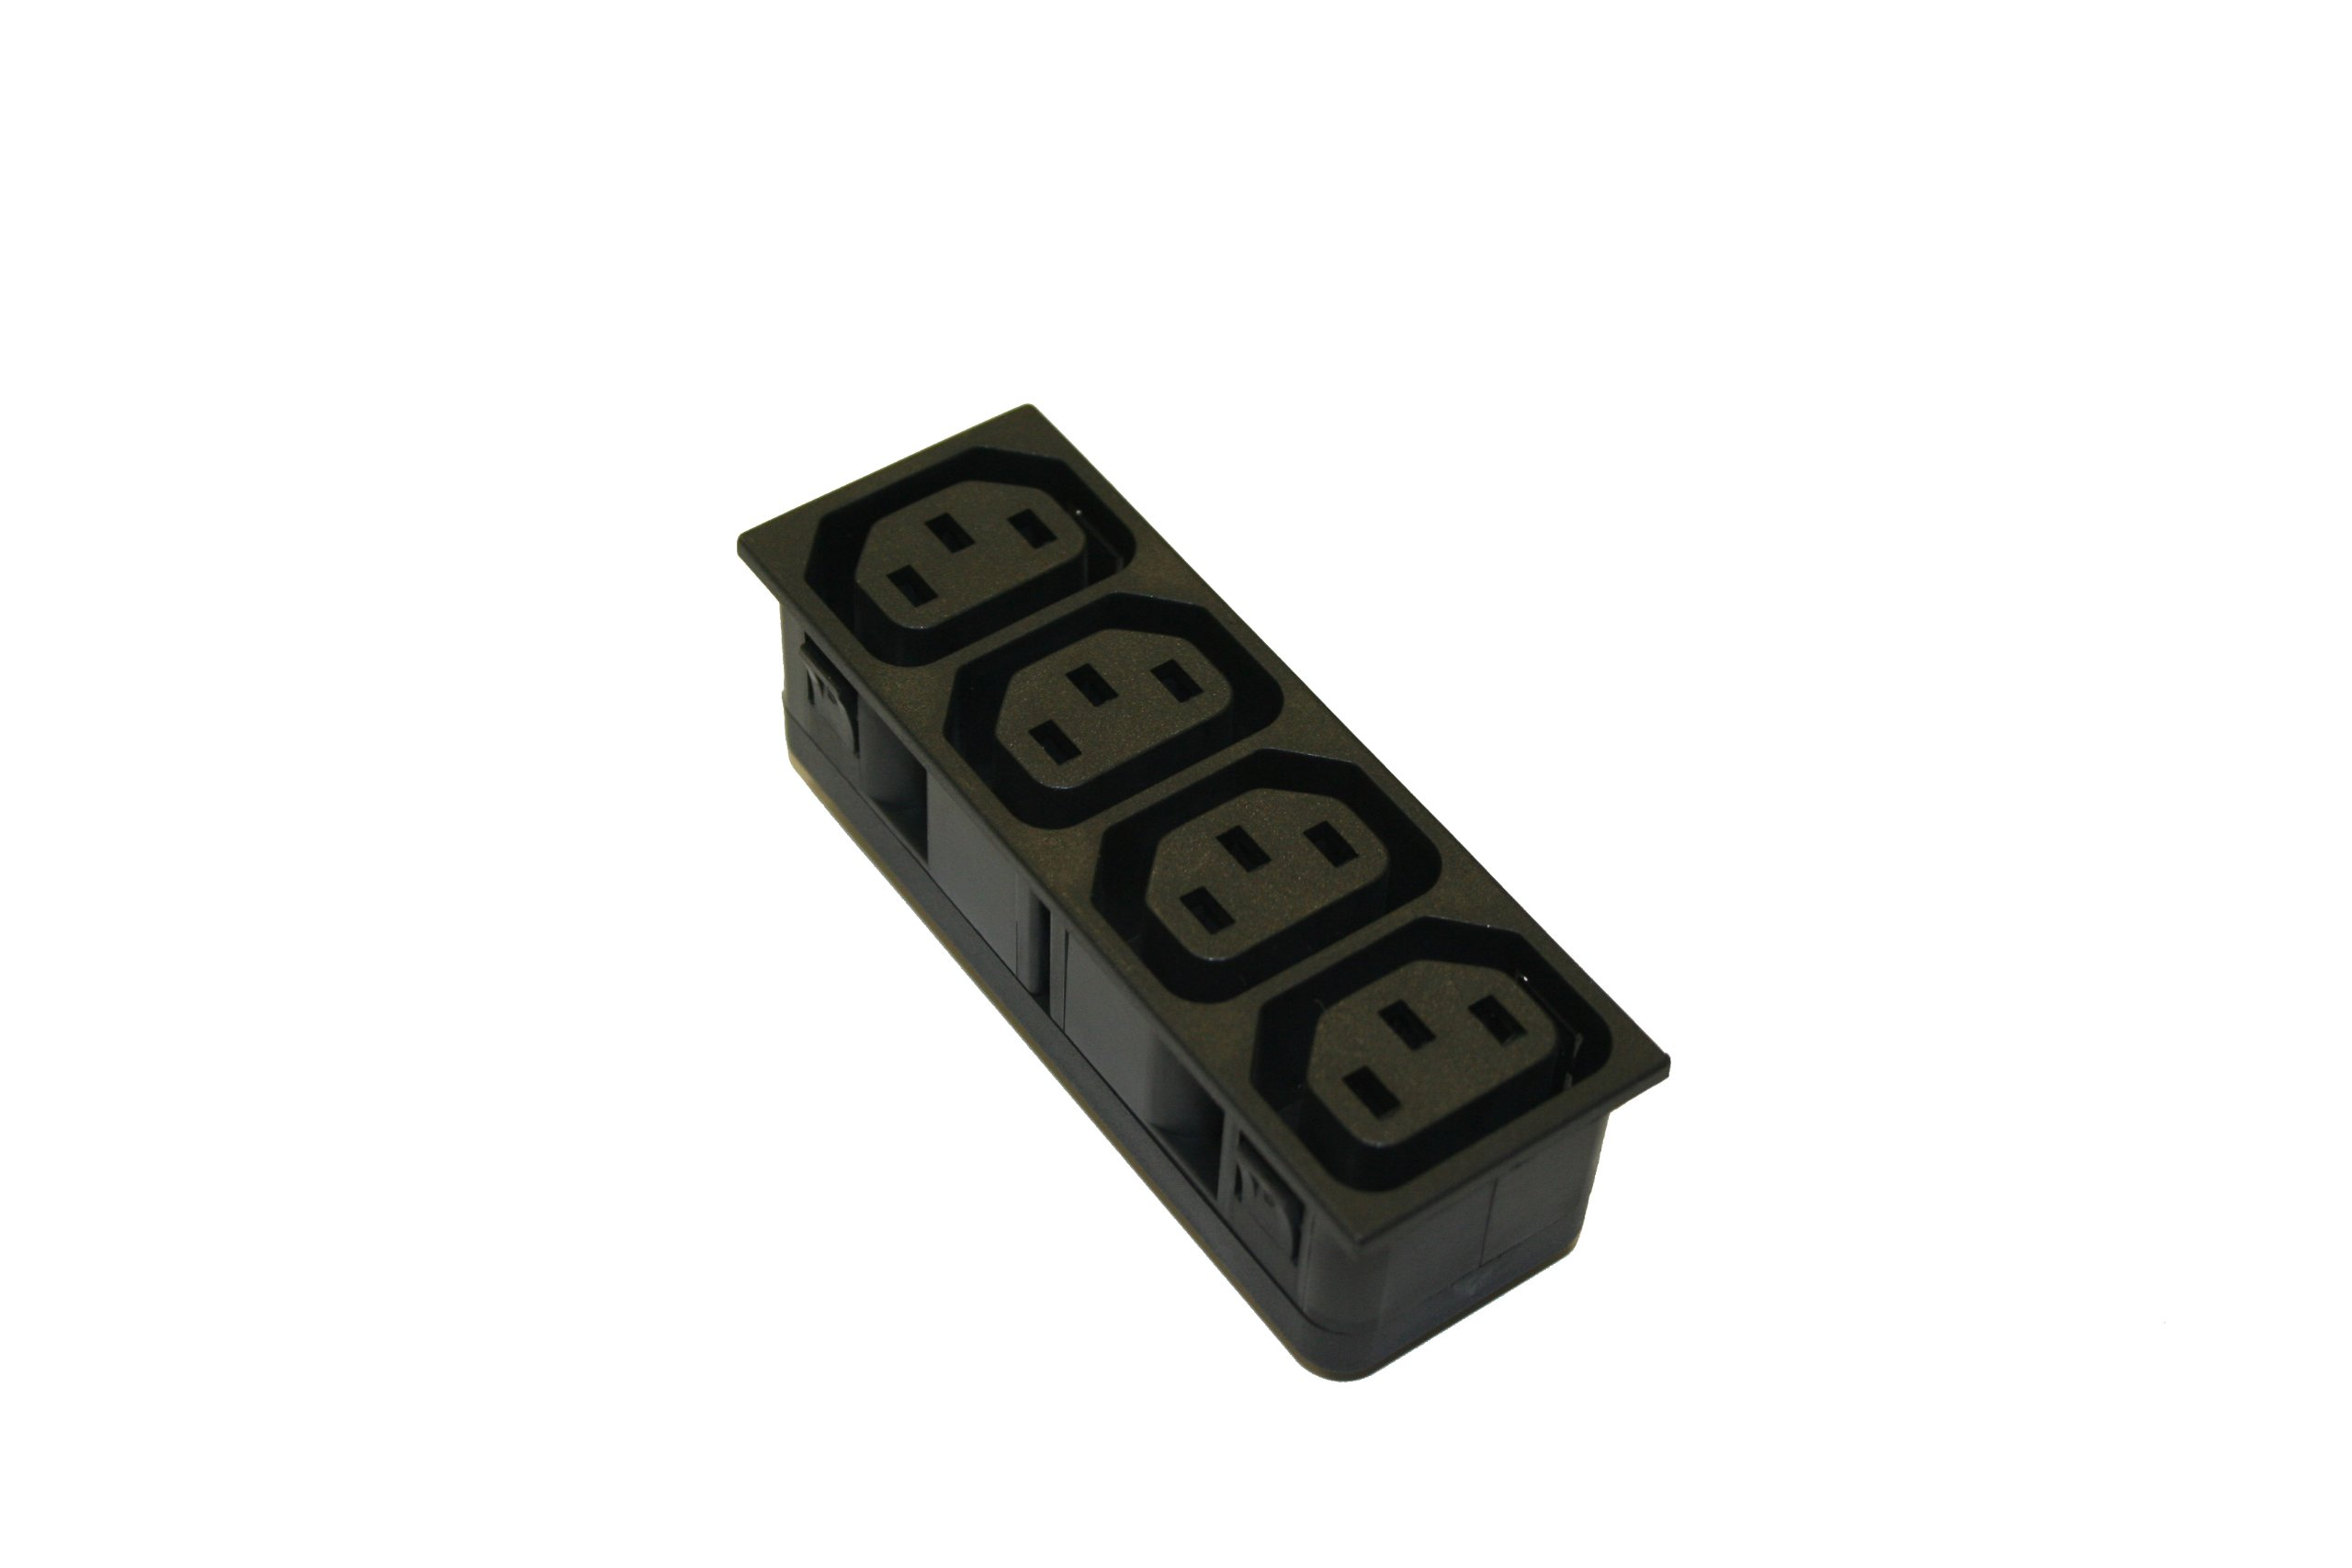 Interpower 83020150 IEC 60320 Four Position Accessory Module, 3mm Panel Thickness, IEC 60320 Sheet F Socket Type, Black, 10A/15A Rating, 250VAC Rating